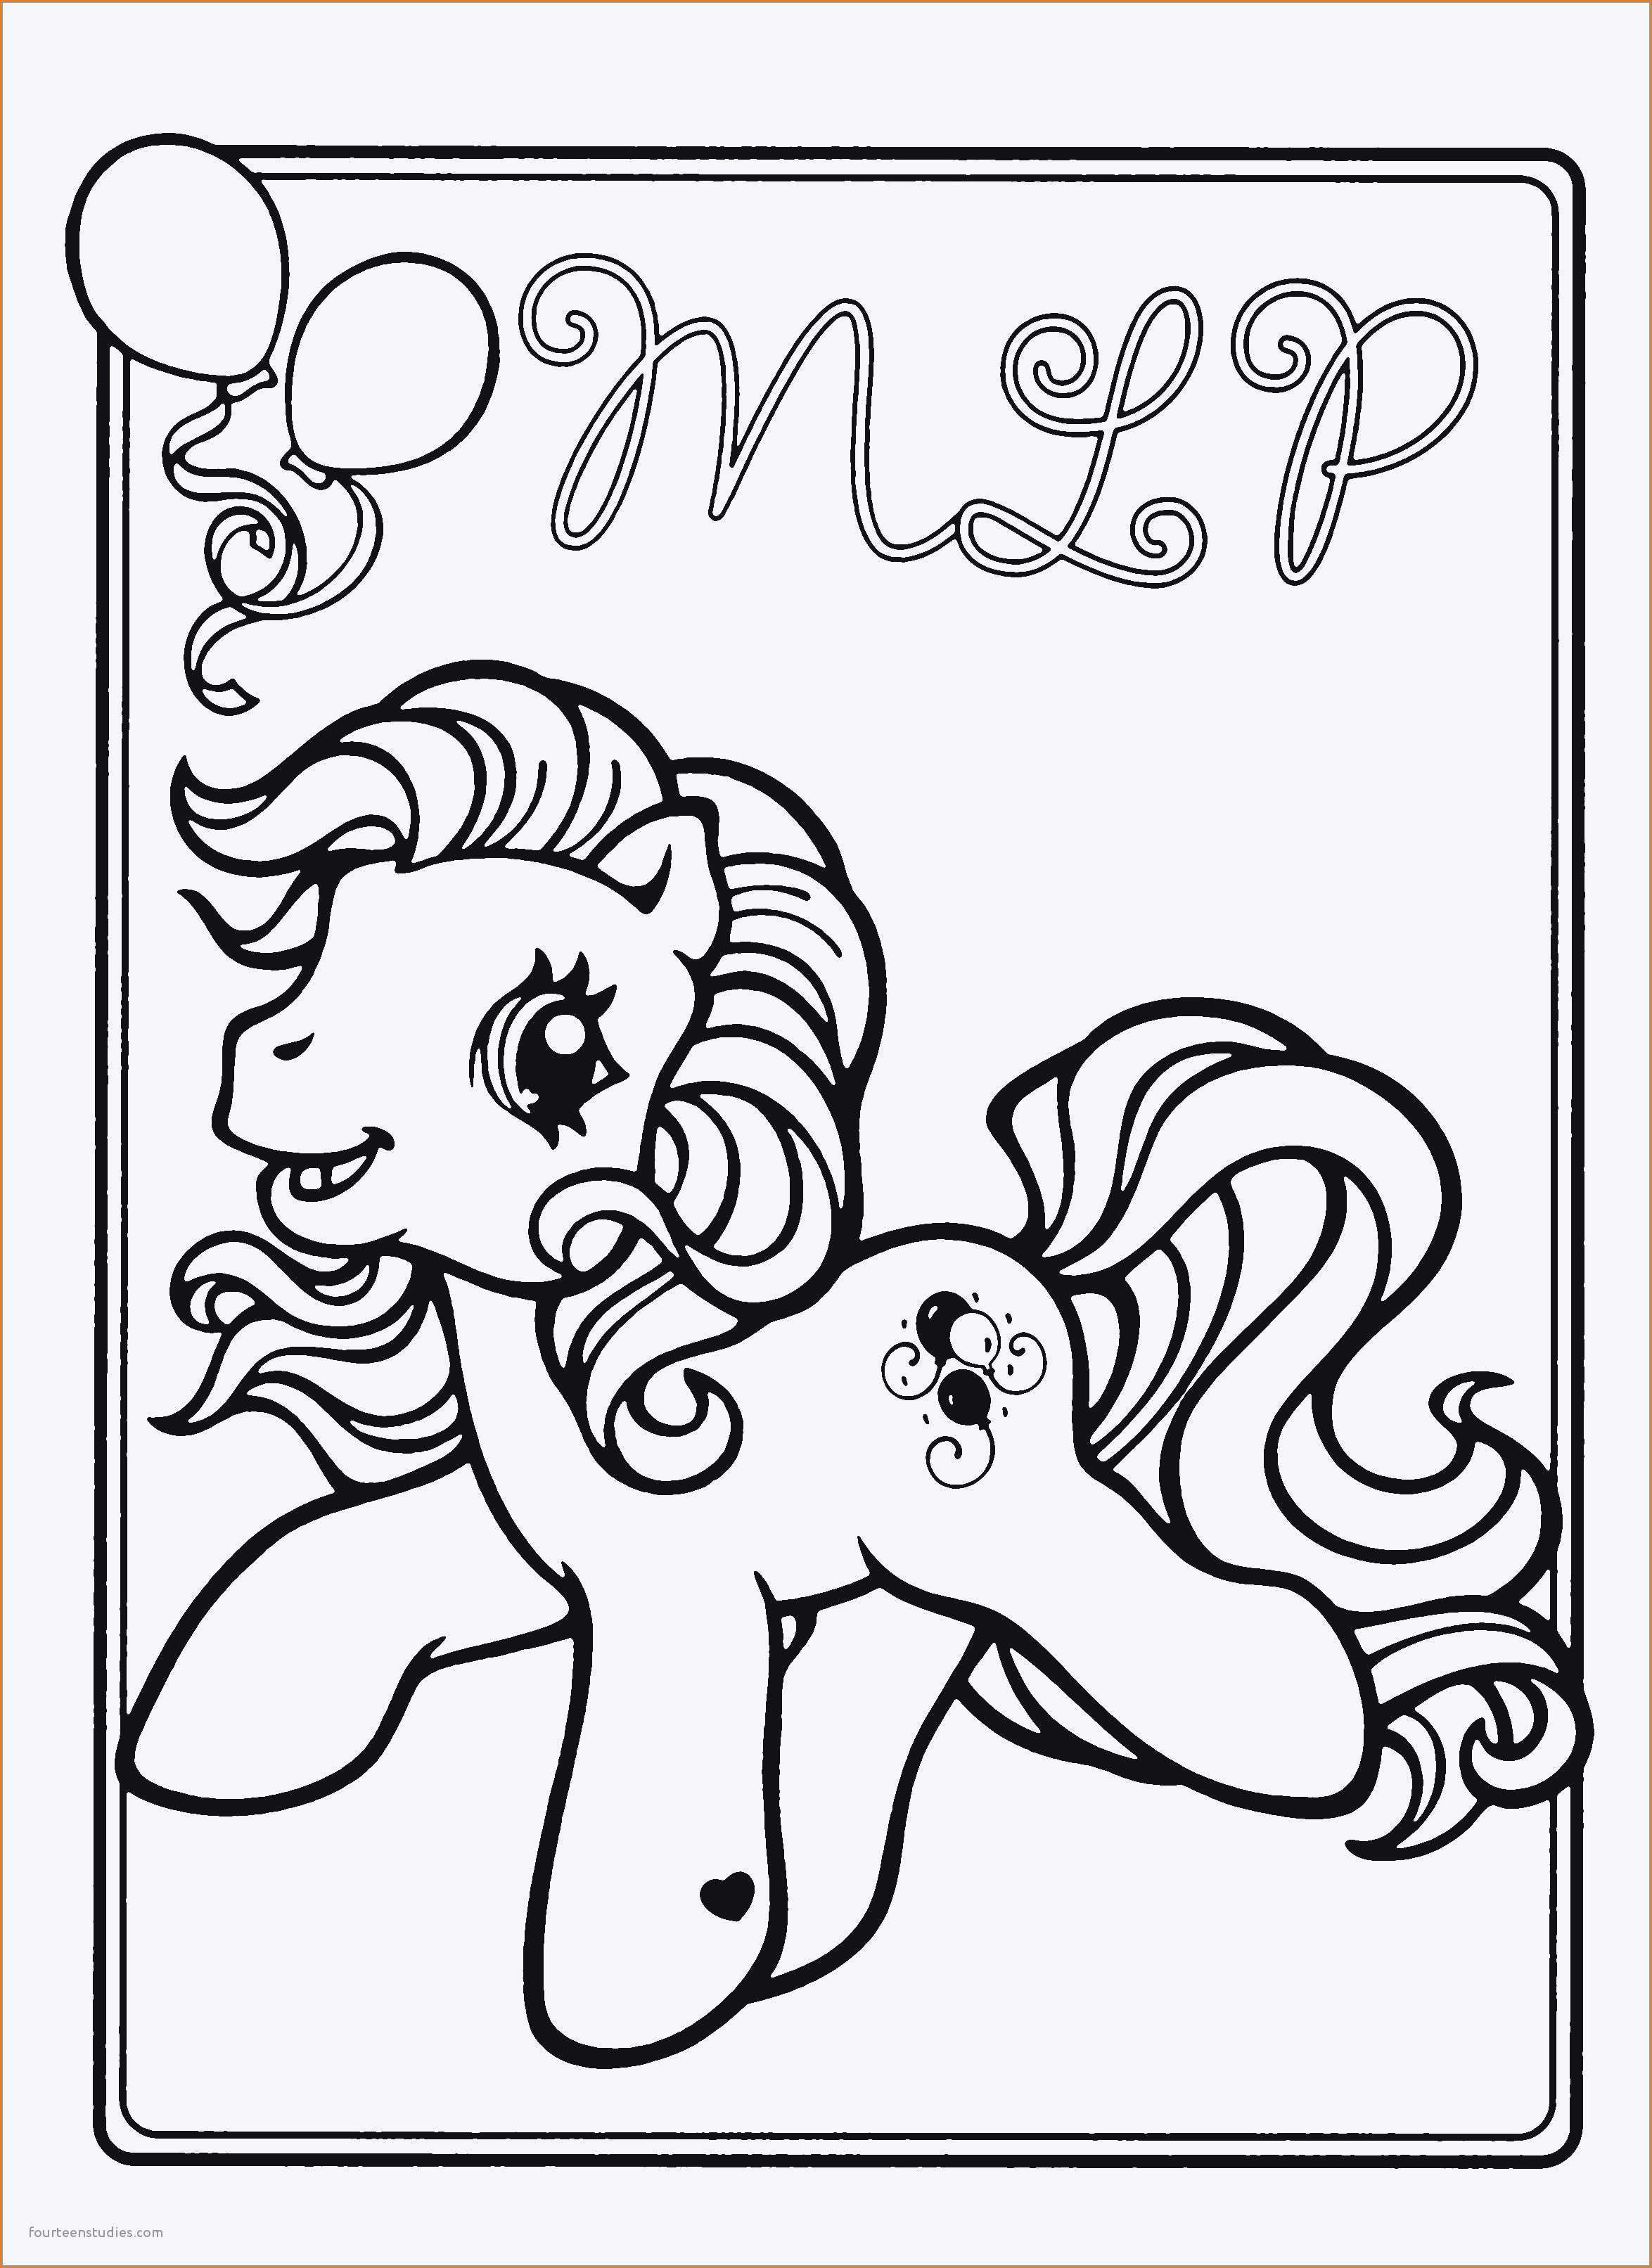 Anime Engel Ausmalbilder Neu Mlp Equestria Girls Coloring Pages Free My Little Pony Equestria Fotografieren